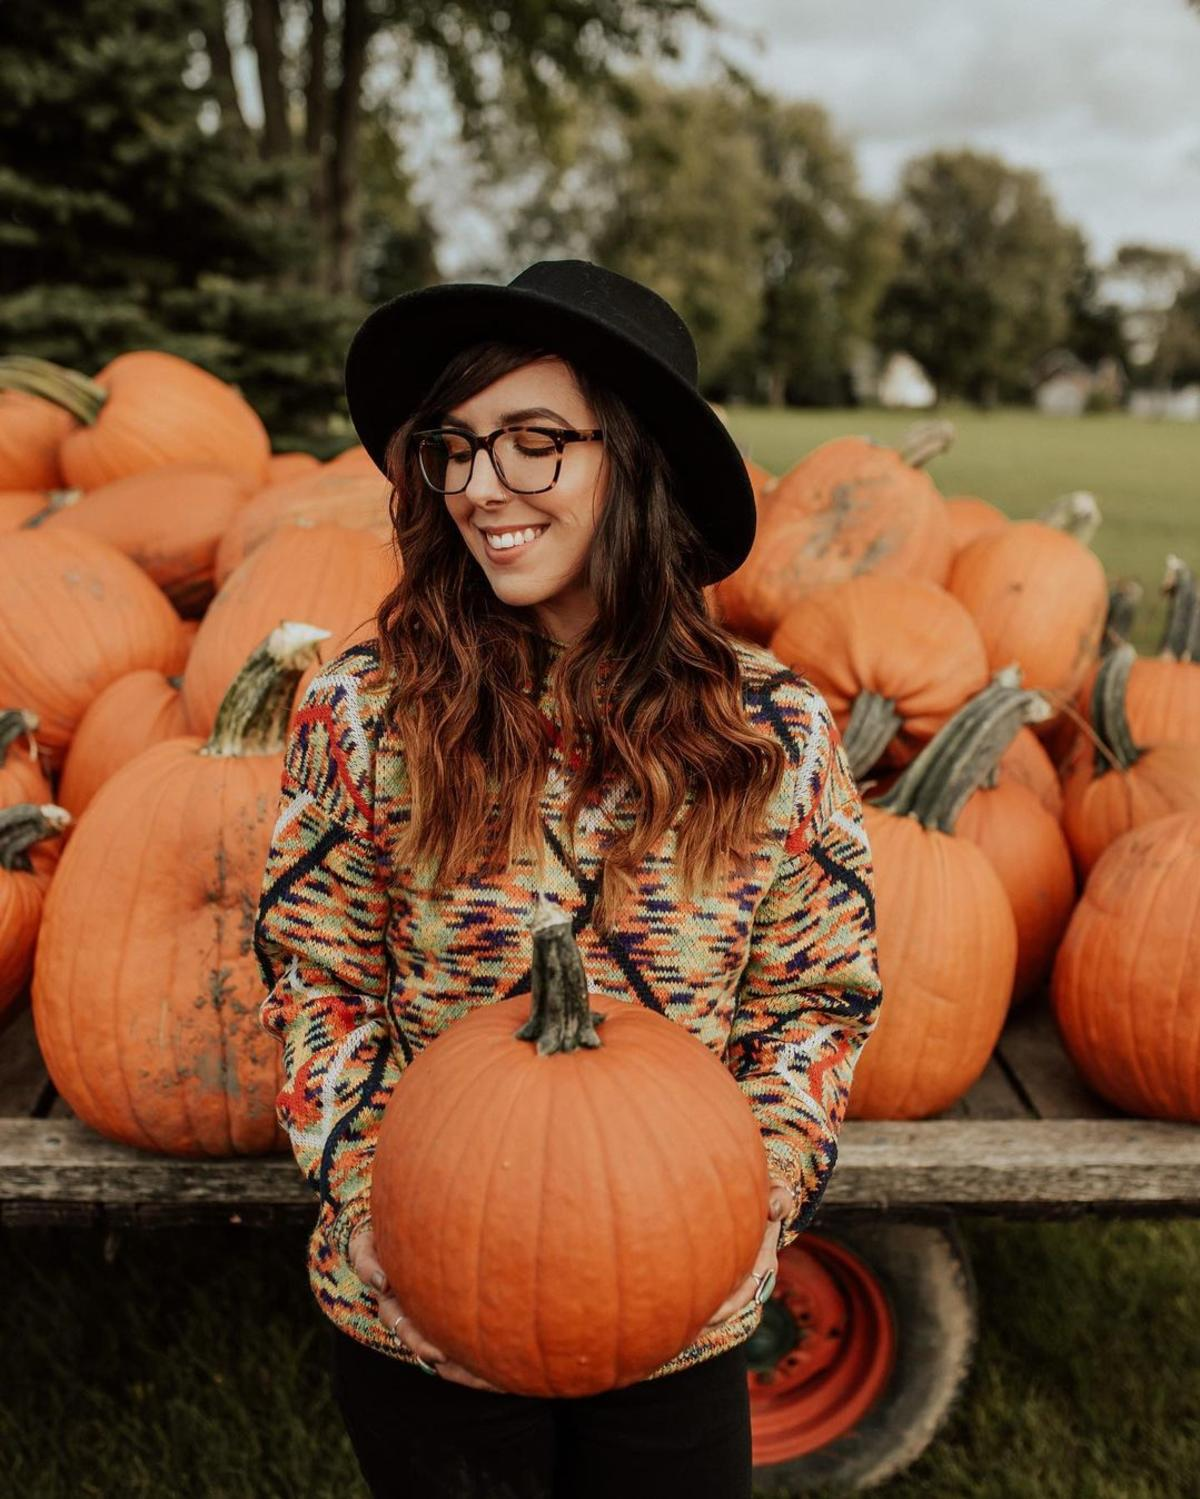 Woman smiling & holding a pumpkin in front of a trailer filled with them at Johnson's Giant Pumpkins in Saginaw